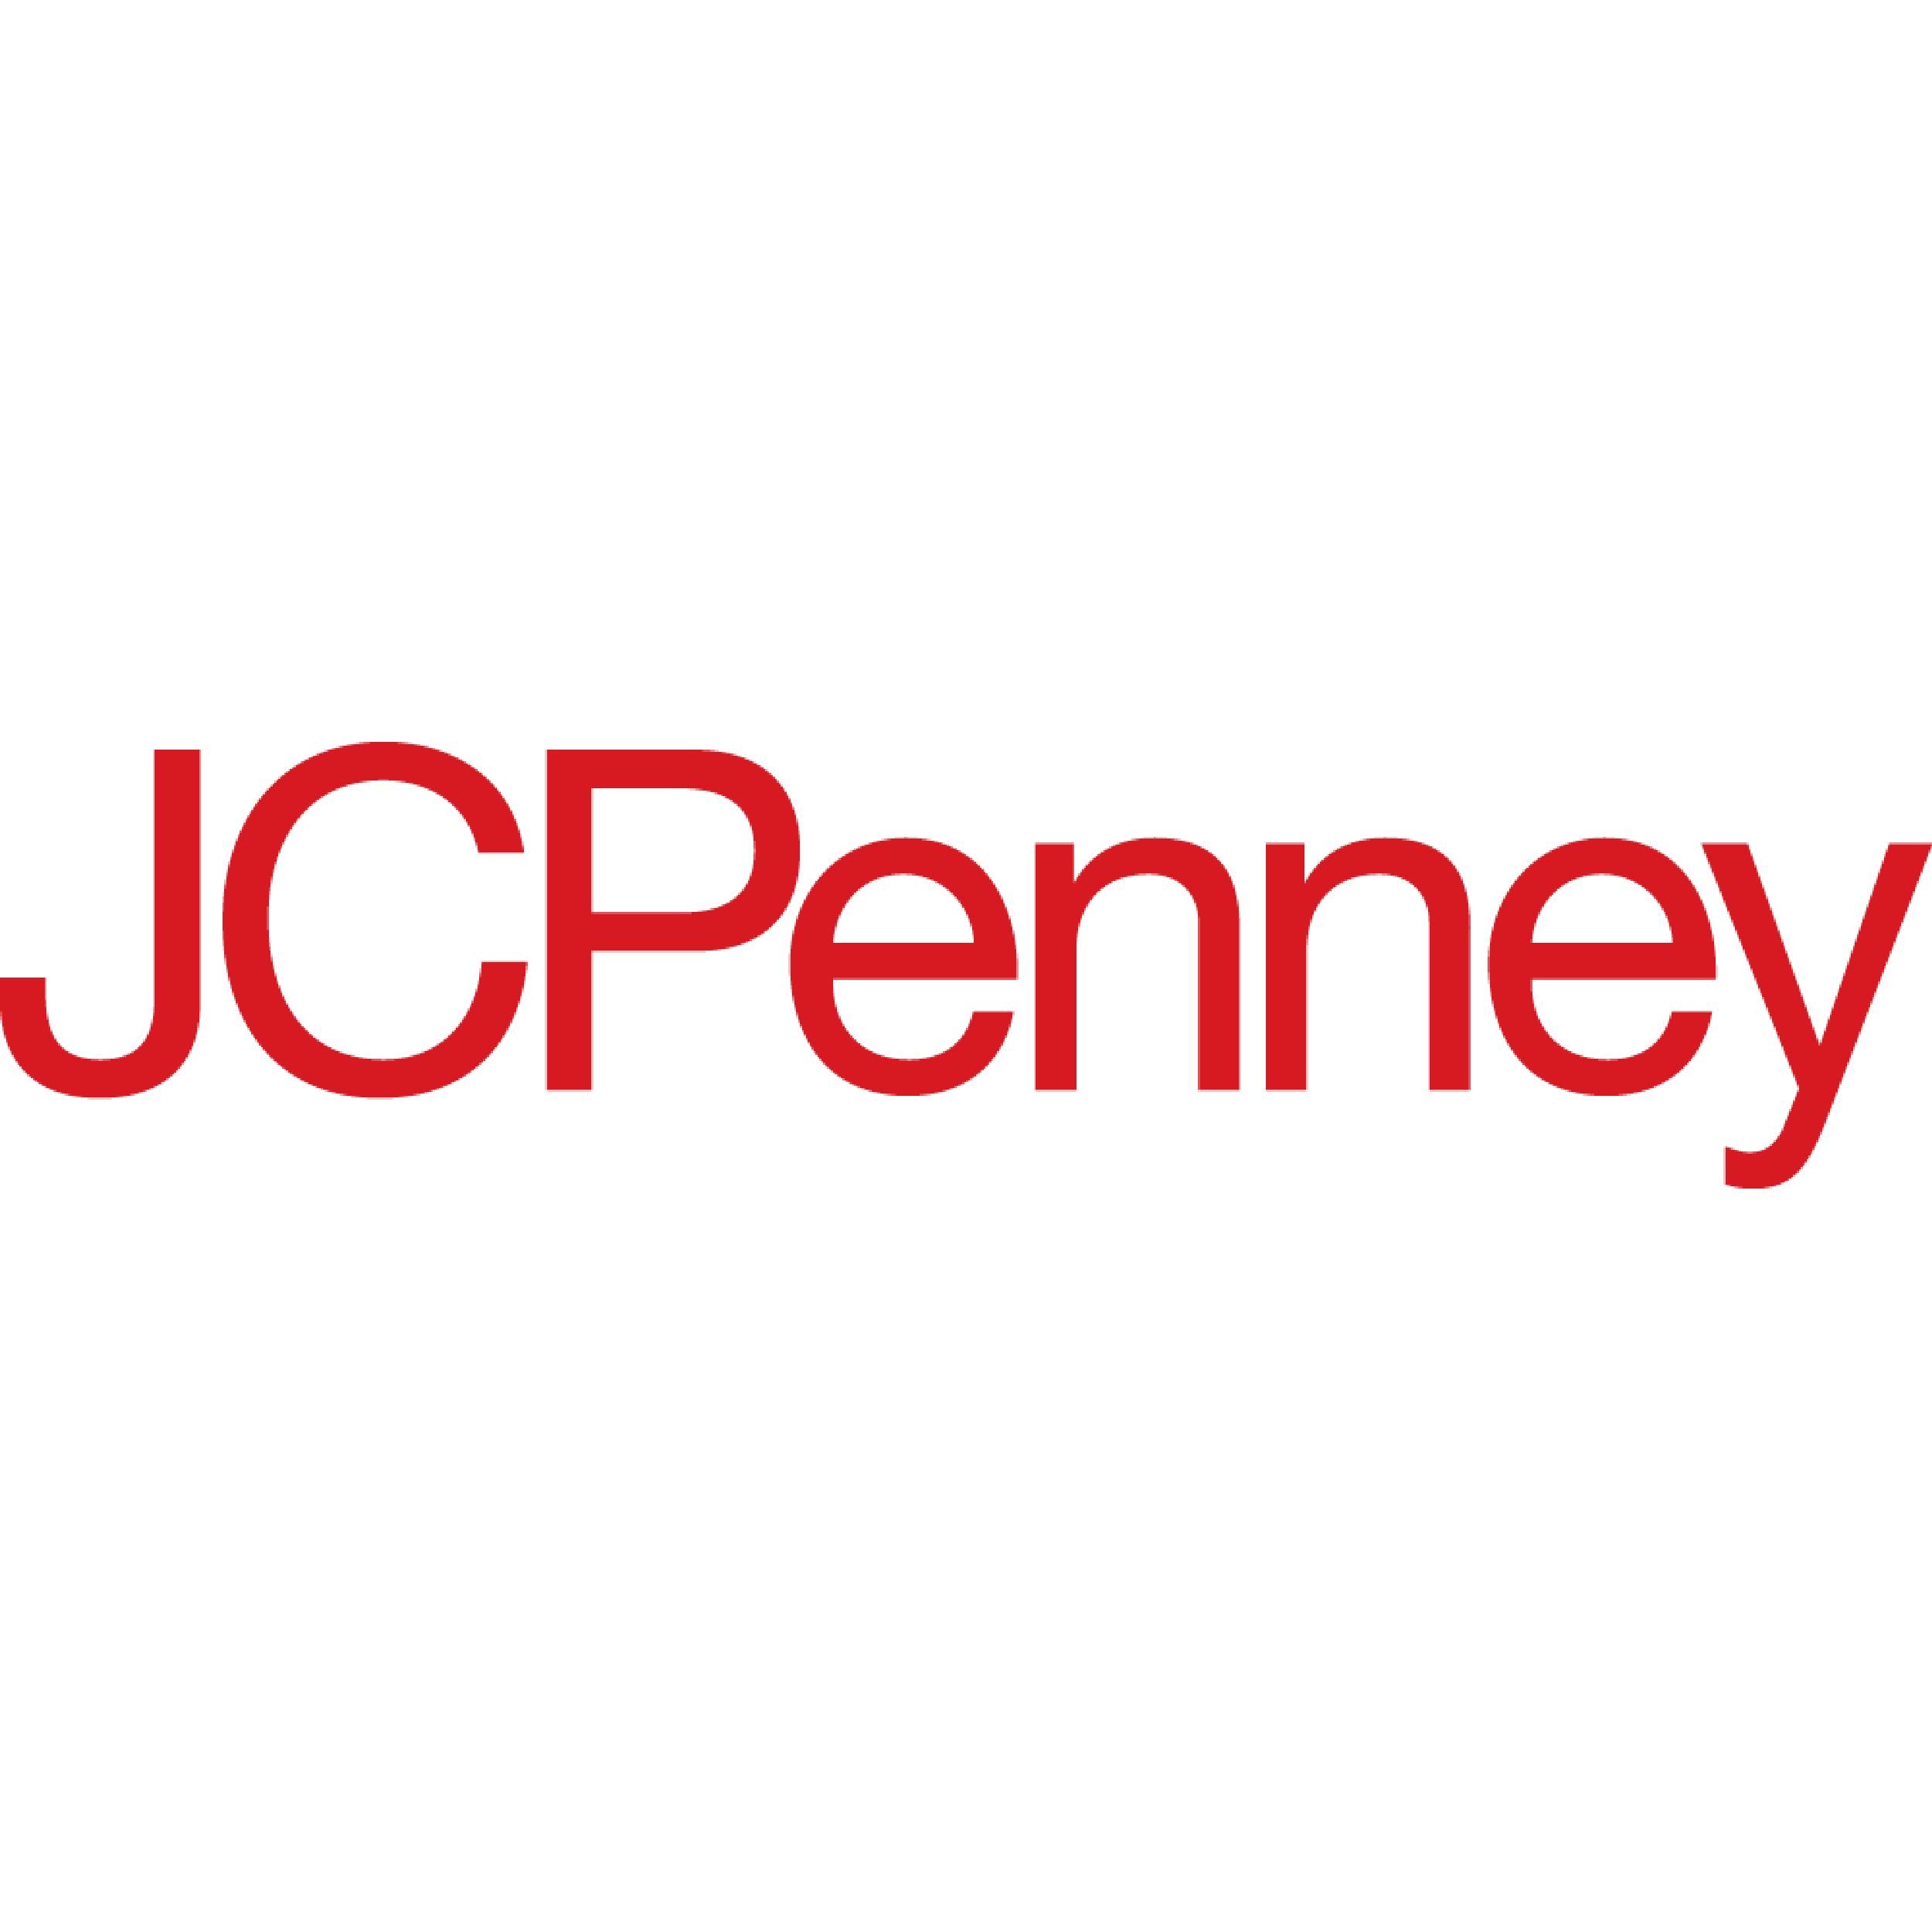 JCPenney - Lynnwood, WA - Department Stores